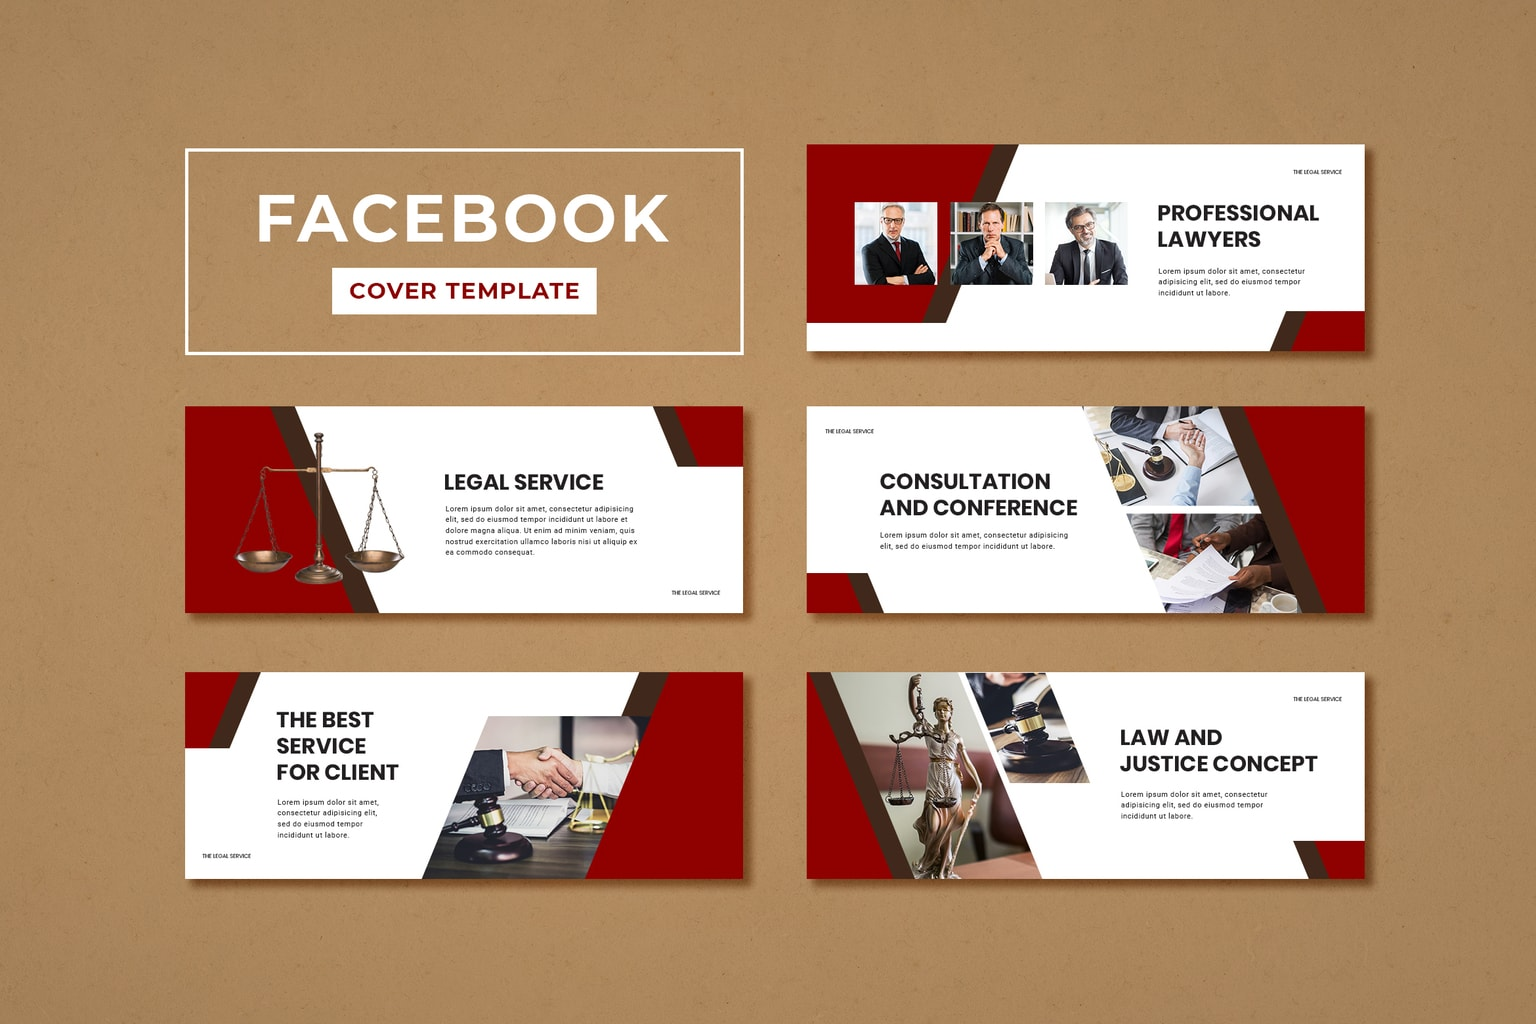 facebook cover legal service